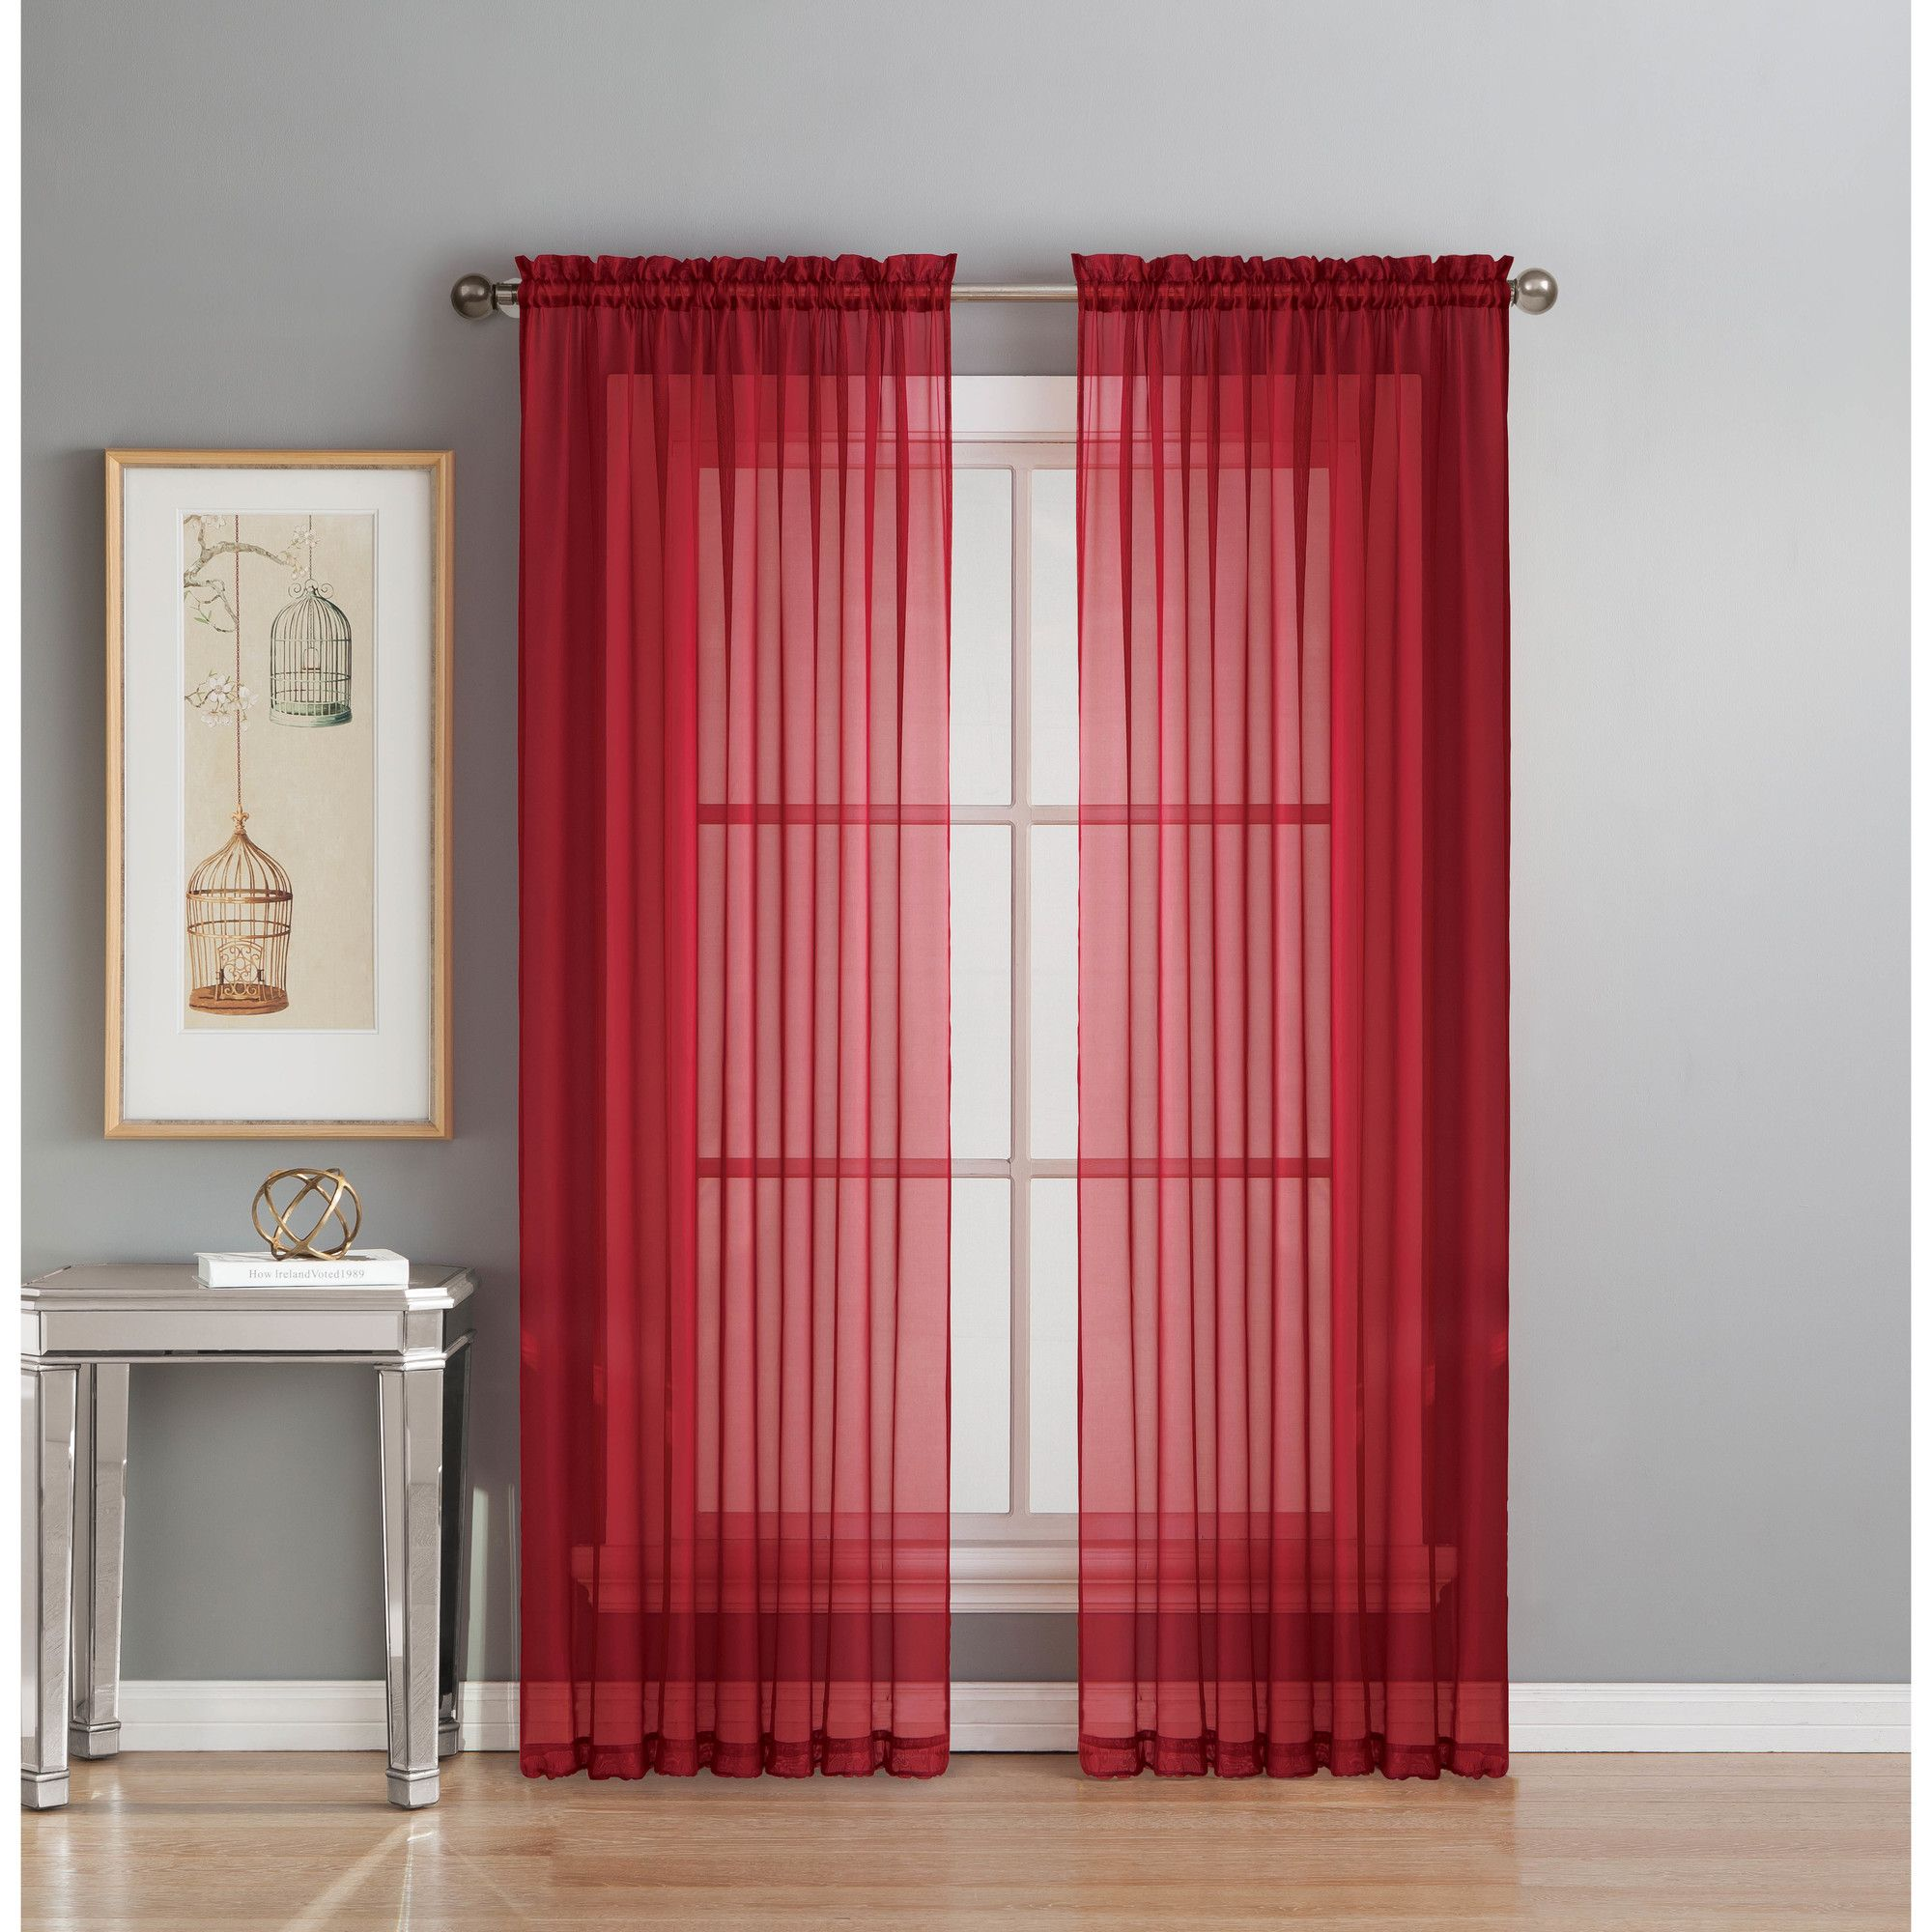 rod angeloferrer curtains rods window treatments windows wide bay curtain com sheer extra